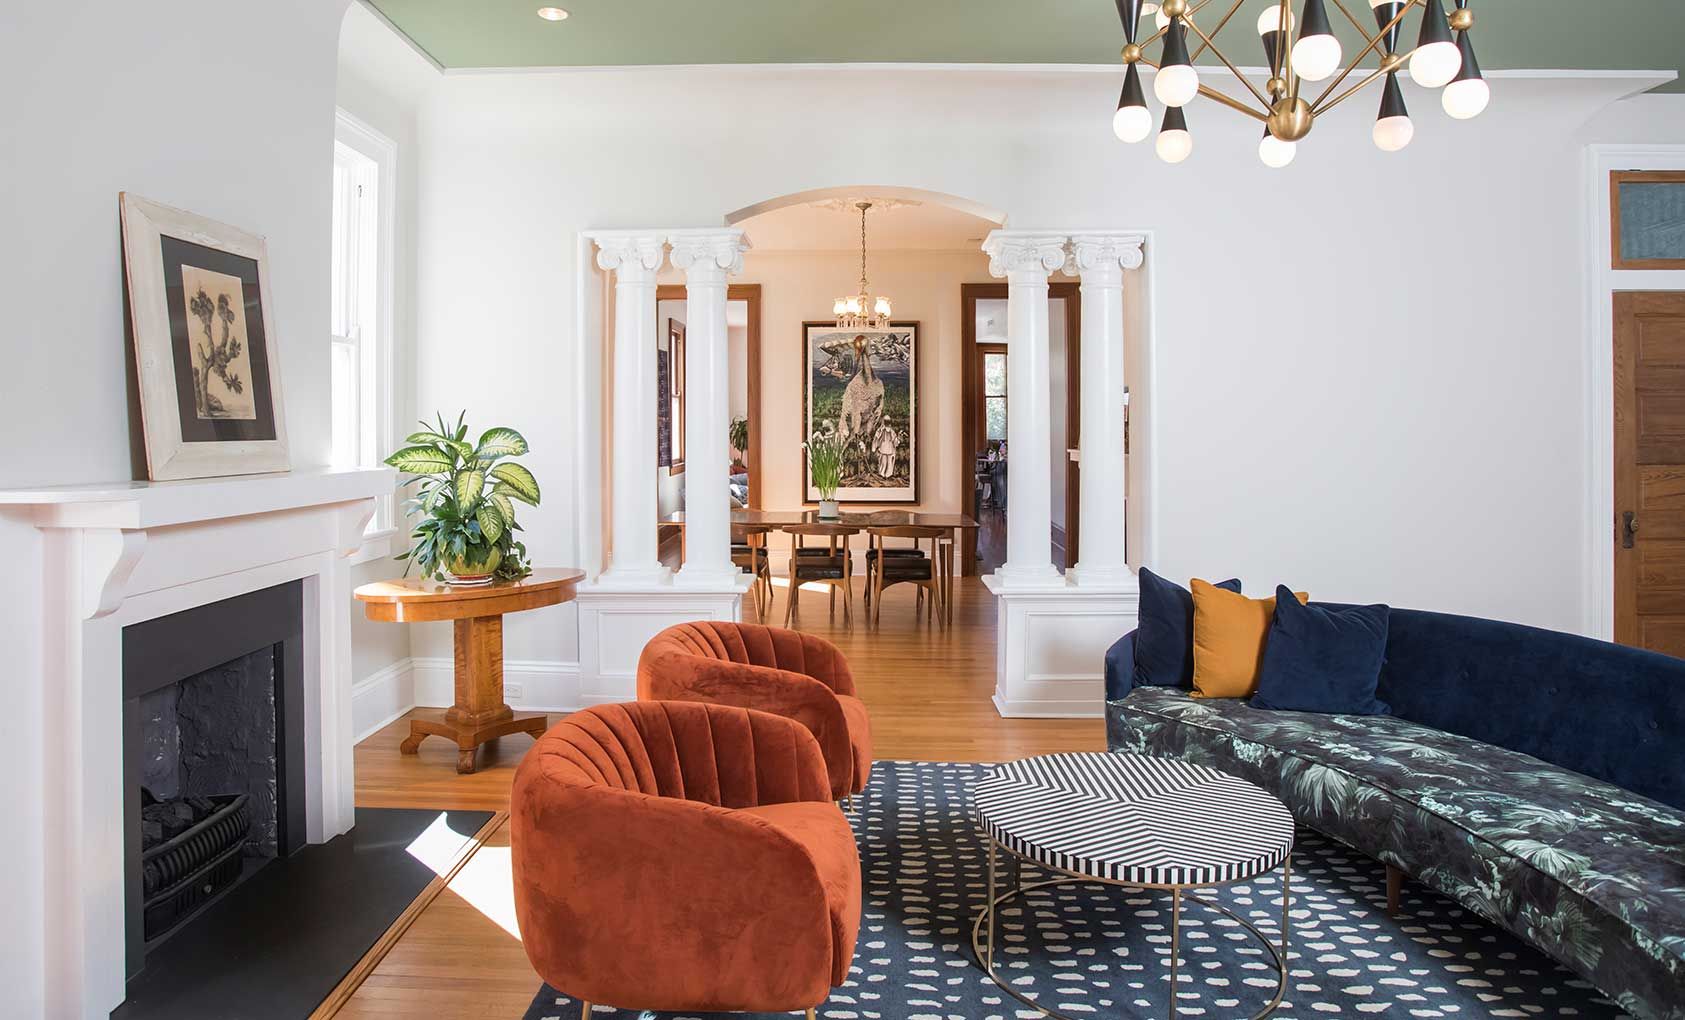 A Neoclassical Home Seamlessly Blends the Old with the New, Design*Sponge